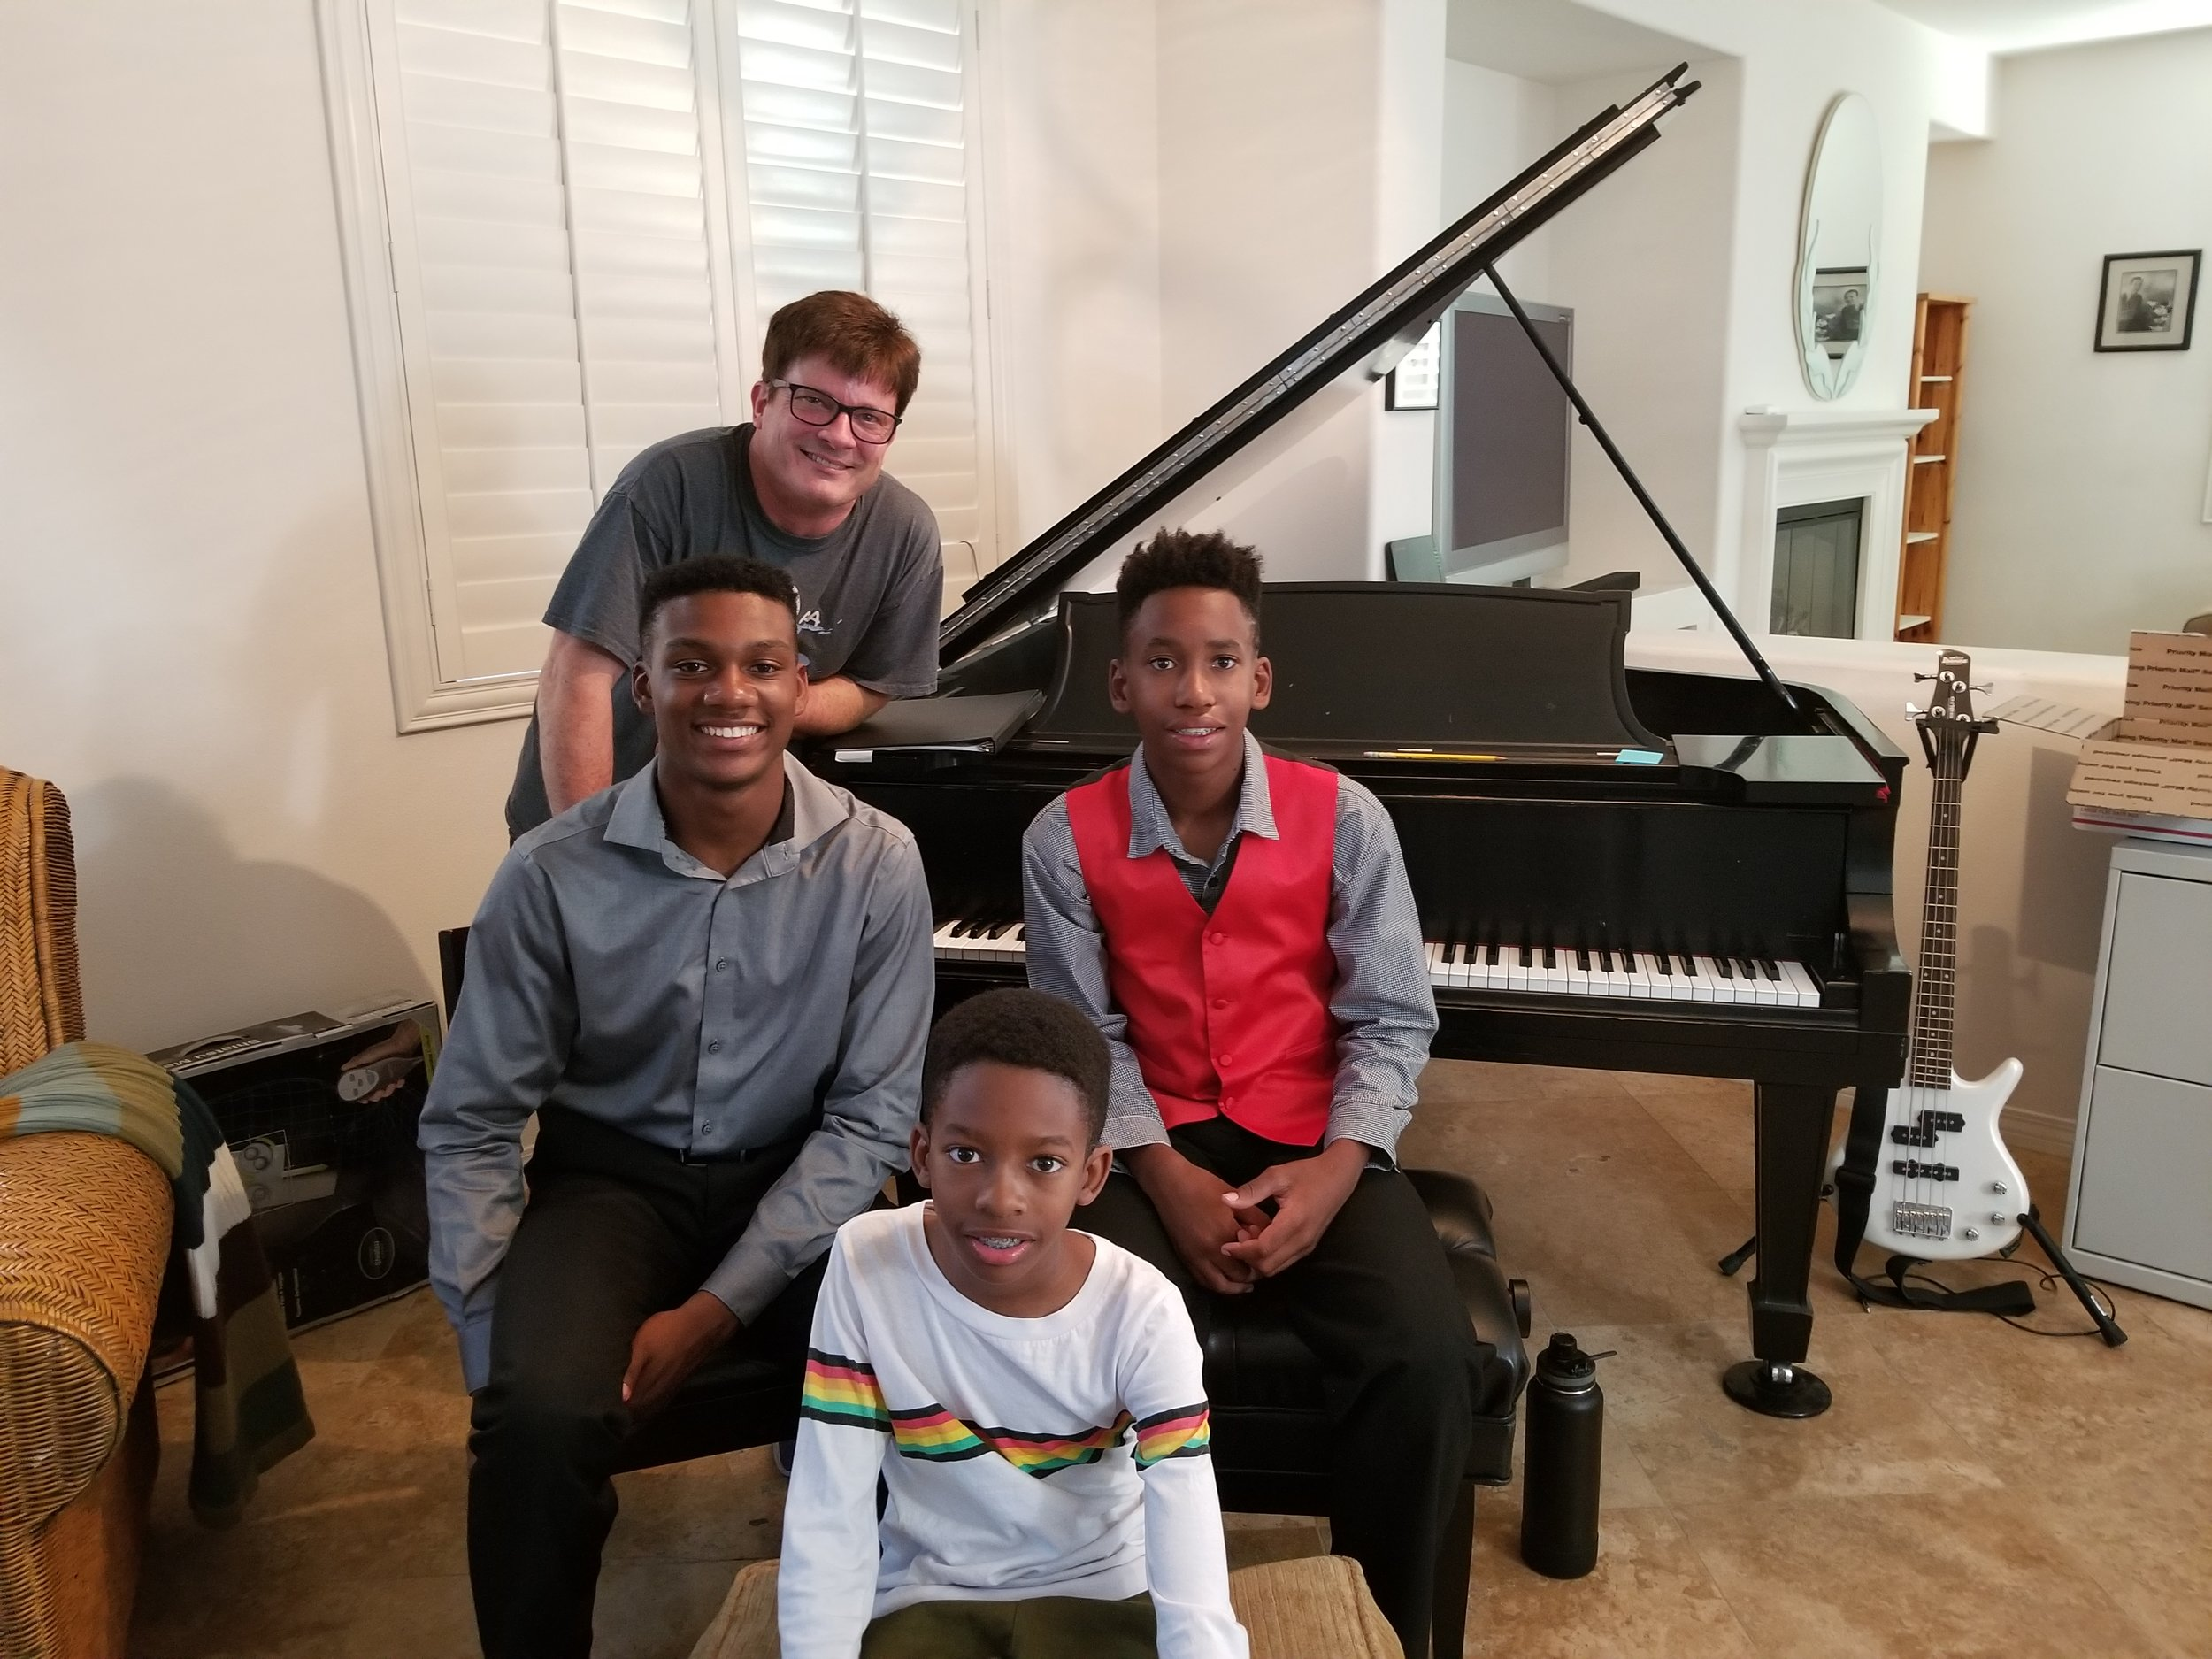 Siblings taking piano lessons in music studio